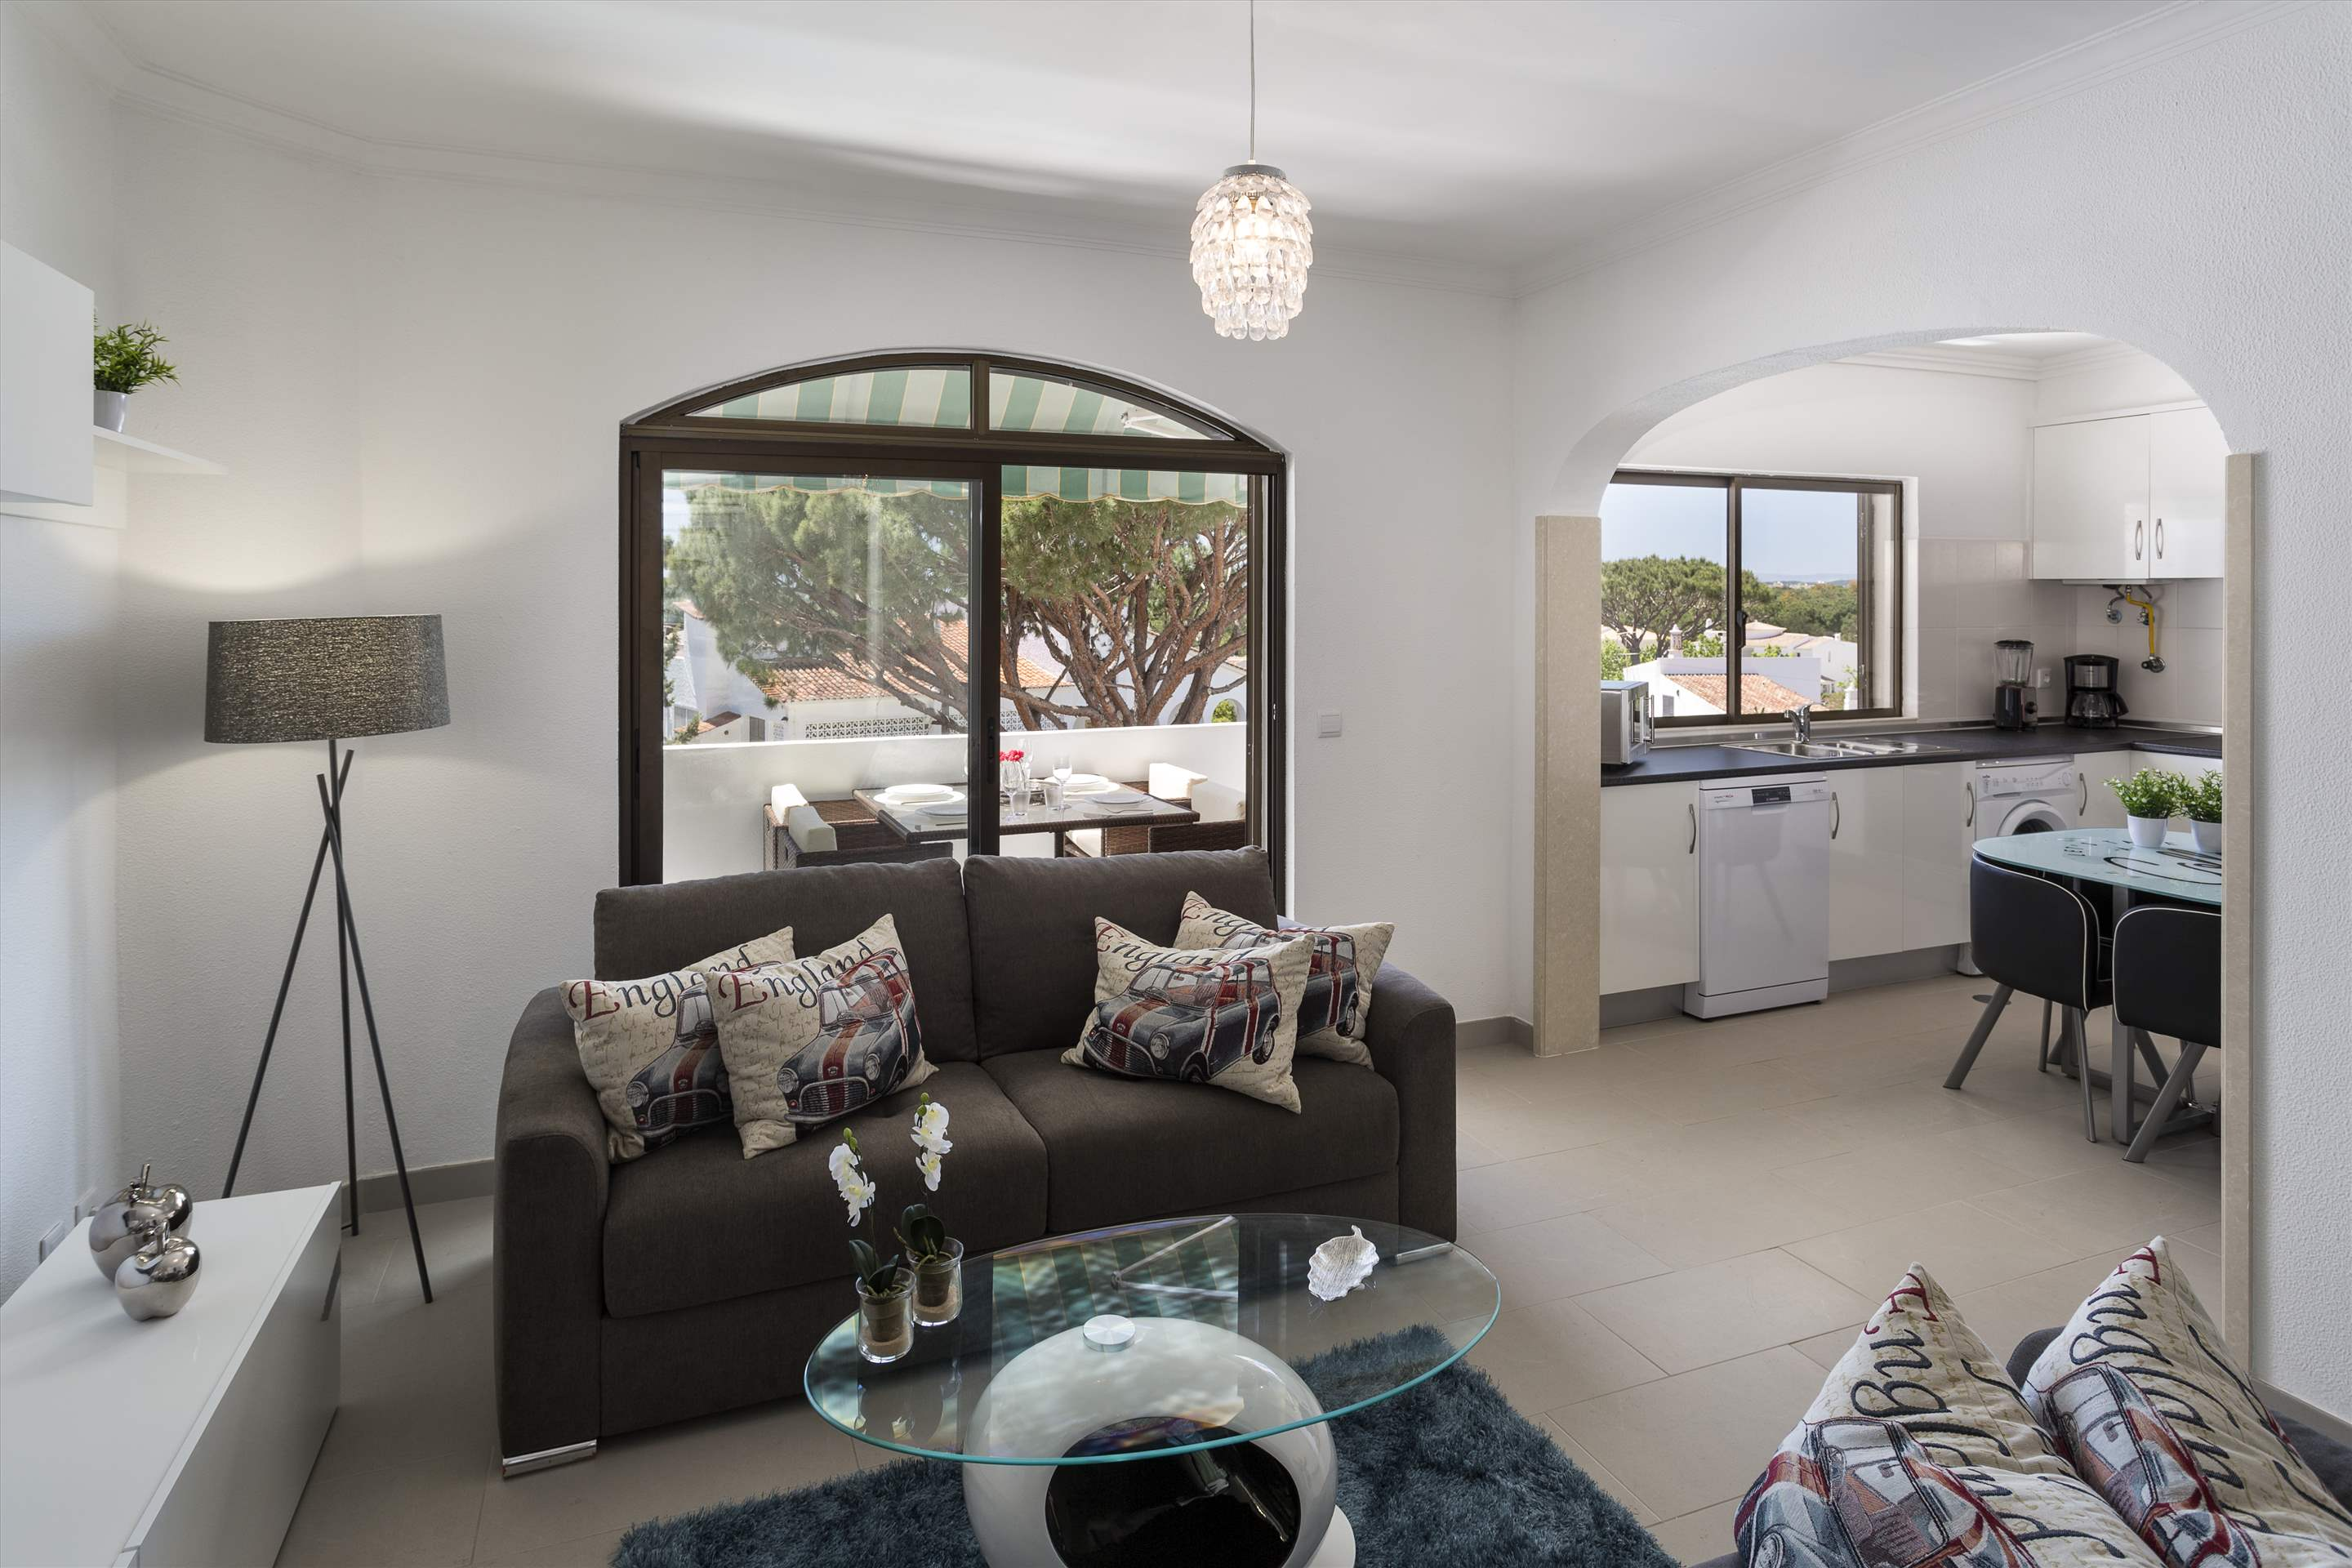 Apartment Jardim do Mar, 2 bedroom apartment in Vilamoura Area, Algarve Photo #5